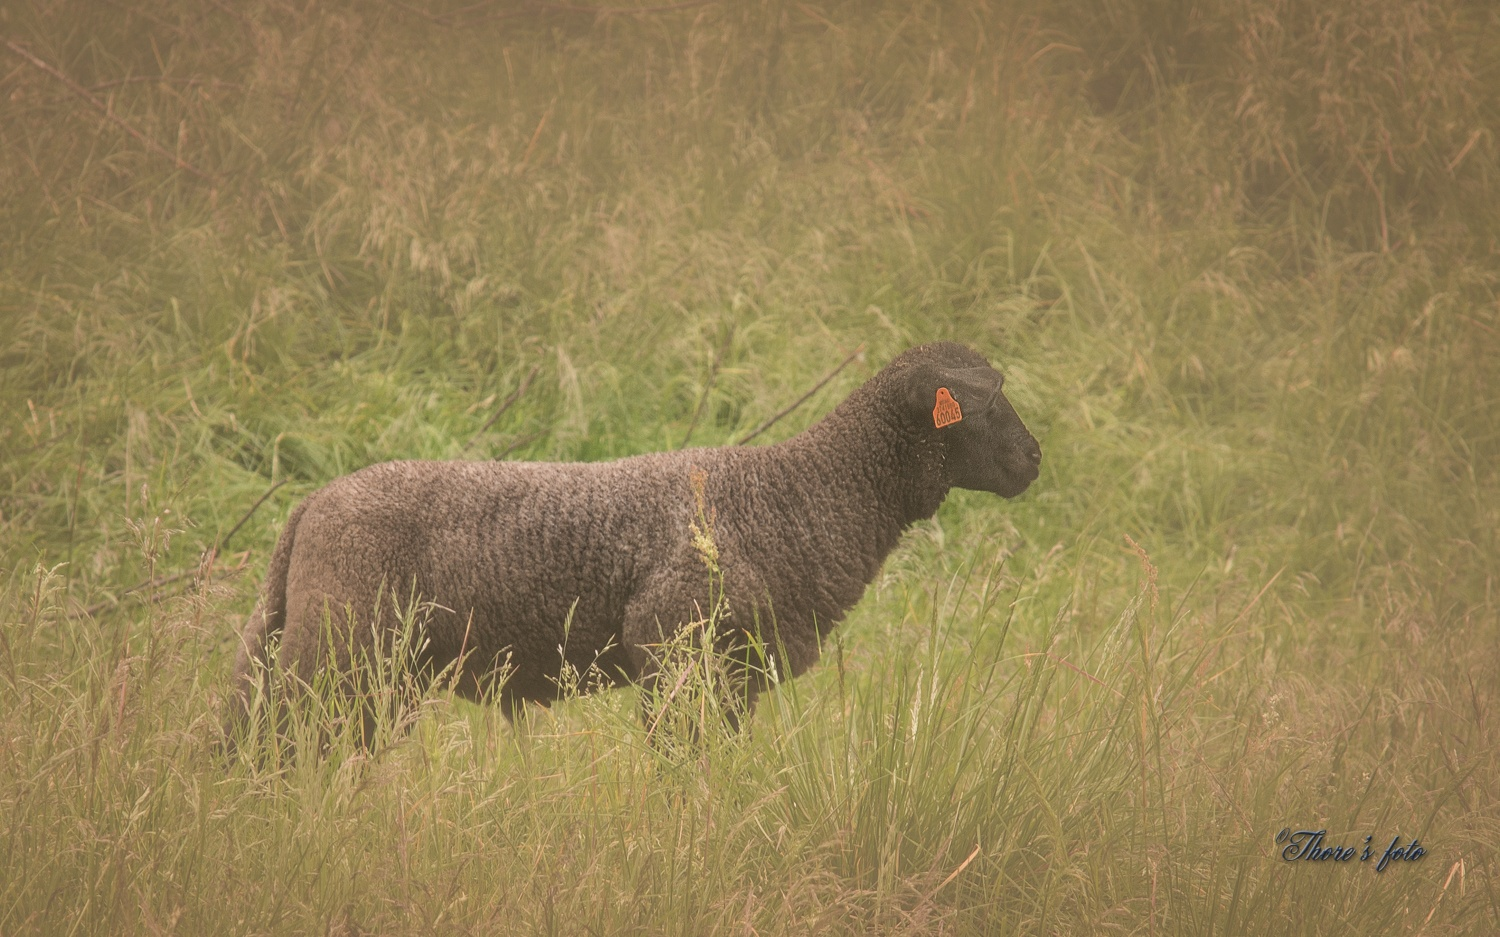 The little black sheep by Thore's photo